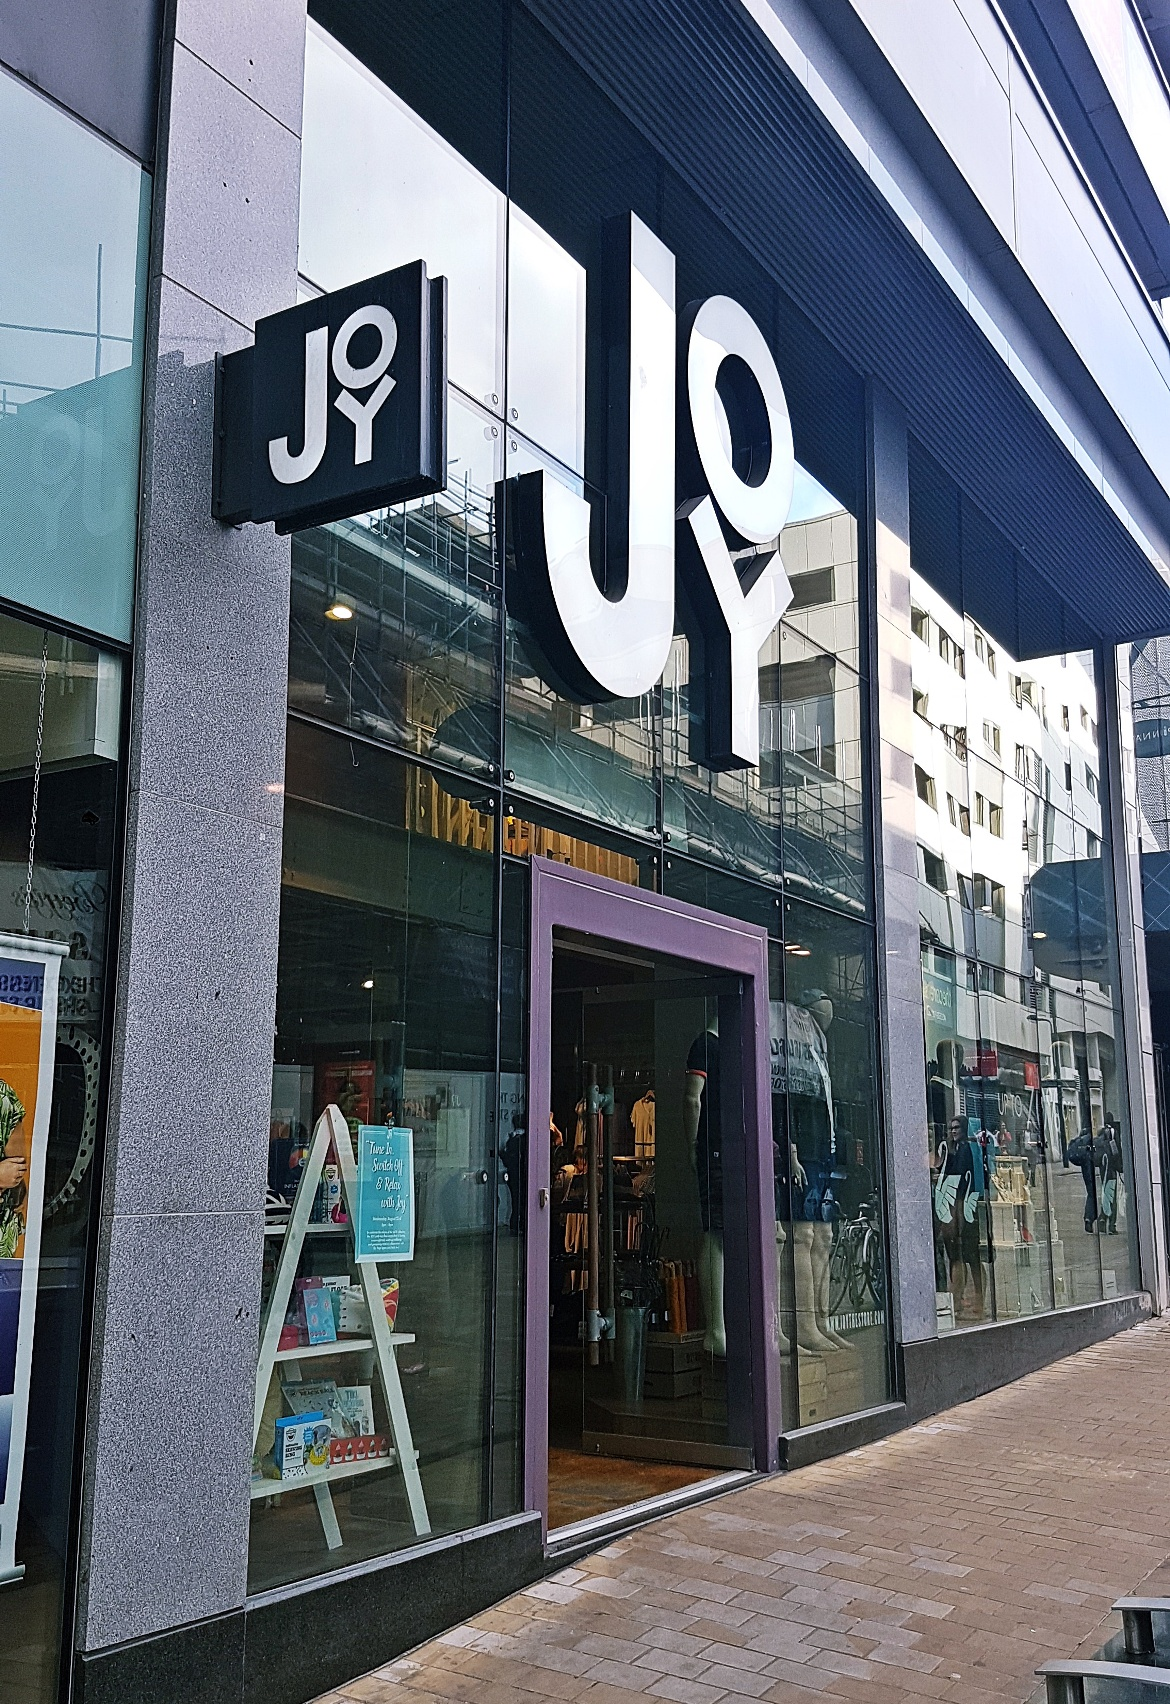 Exterior on Albion Street - Tune in with Joy the Store, Leeds shop review by BeckyBecky Blogs